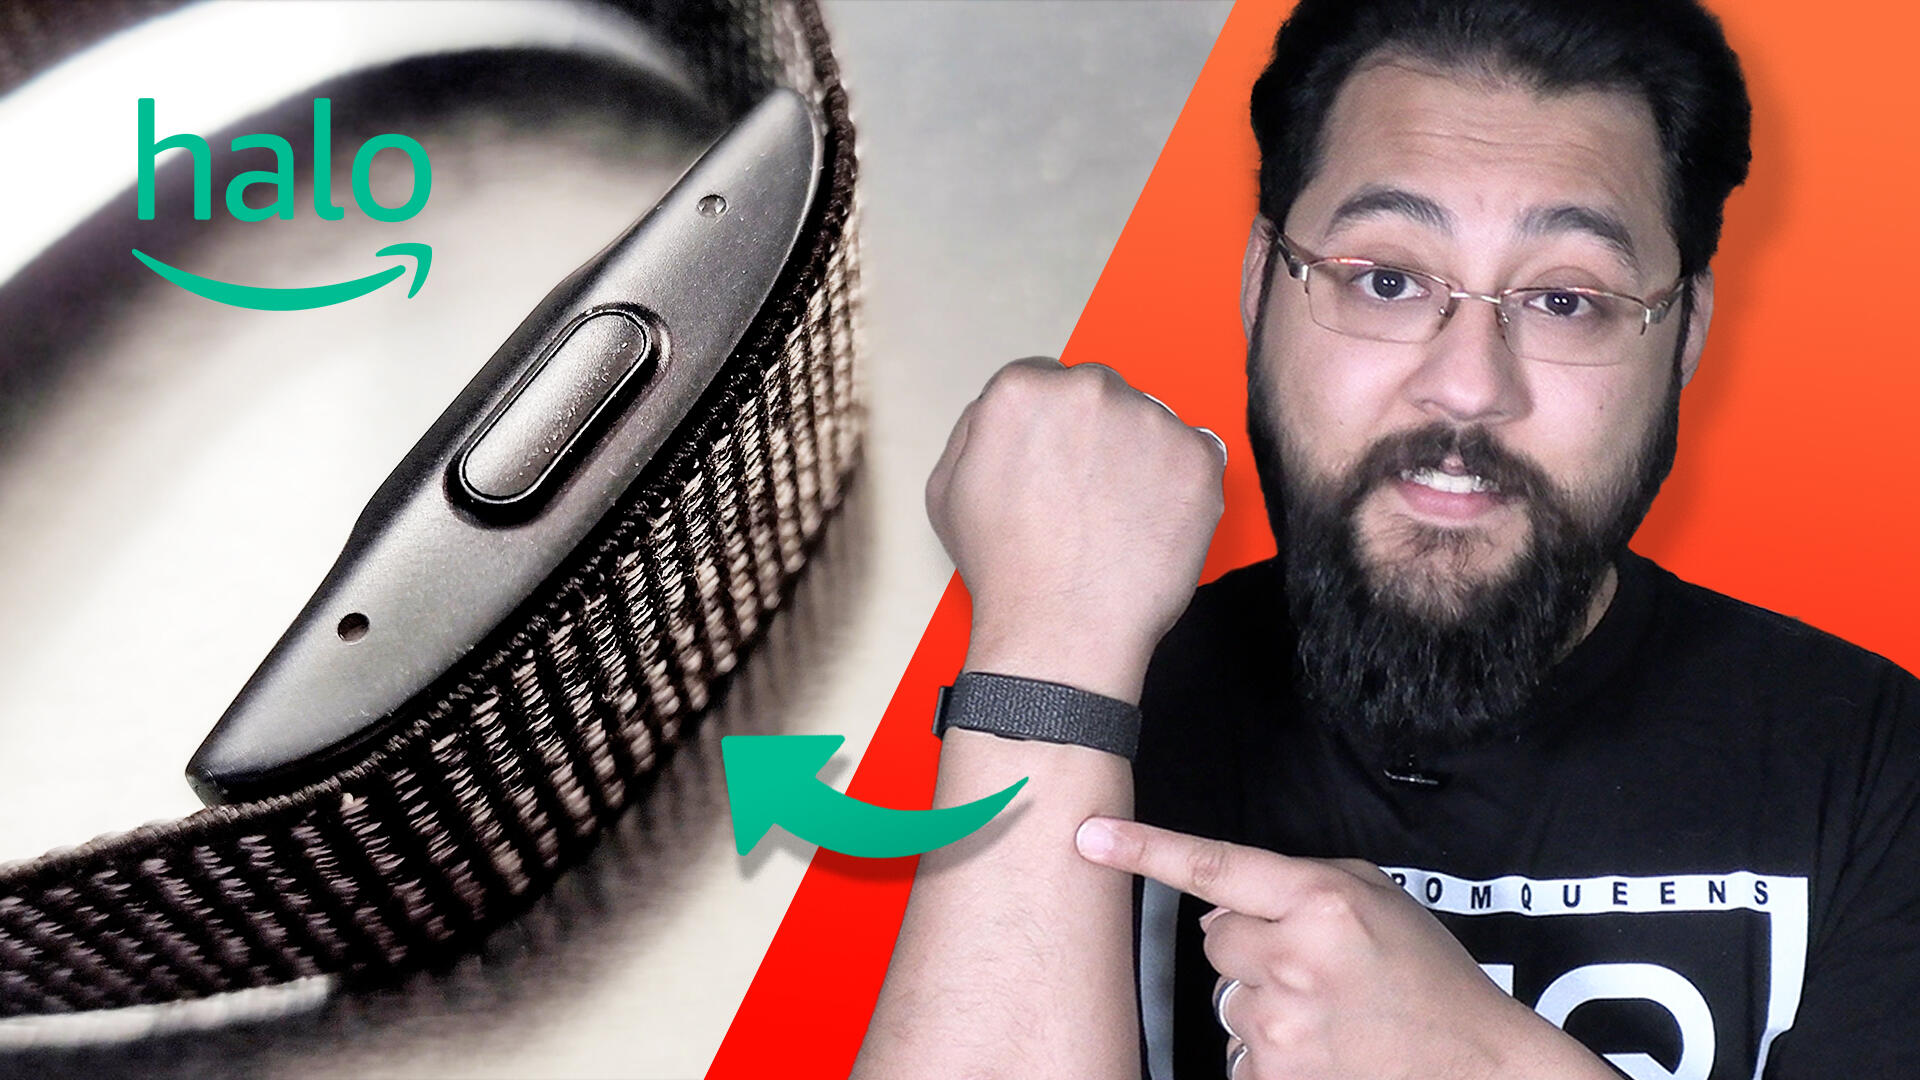 Video: Amazon's new fitness band vs. New York sarcasm